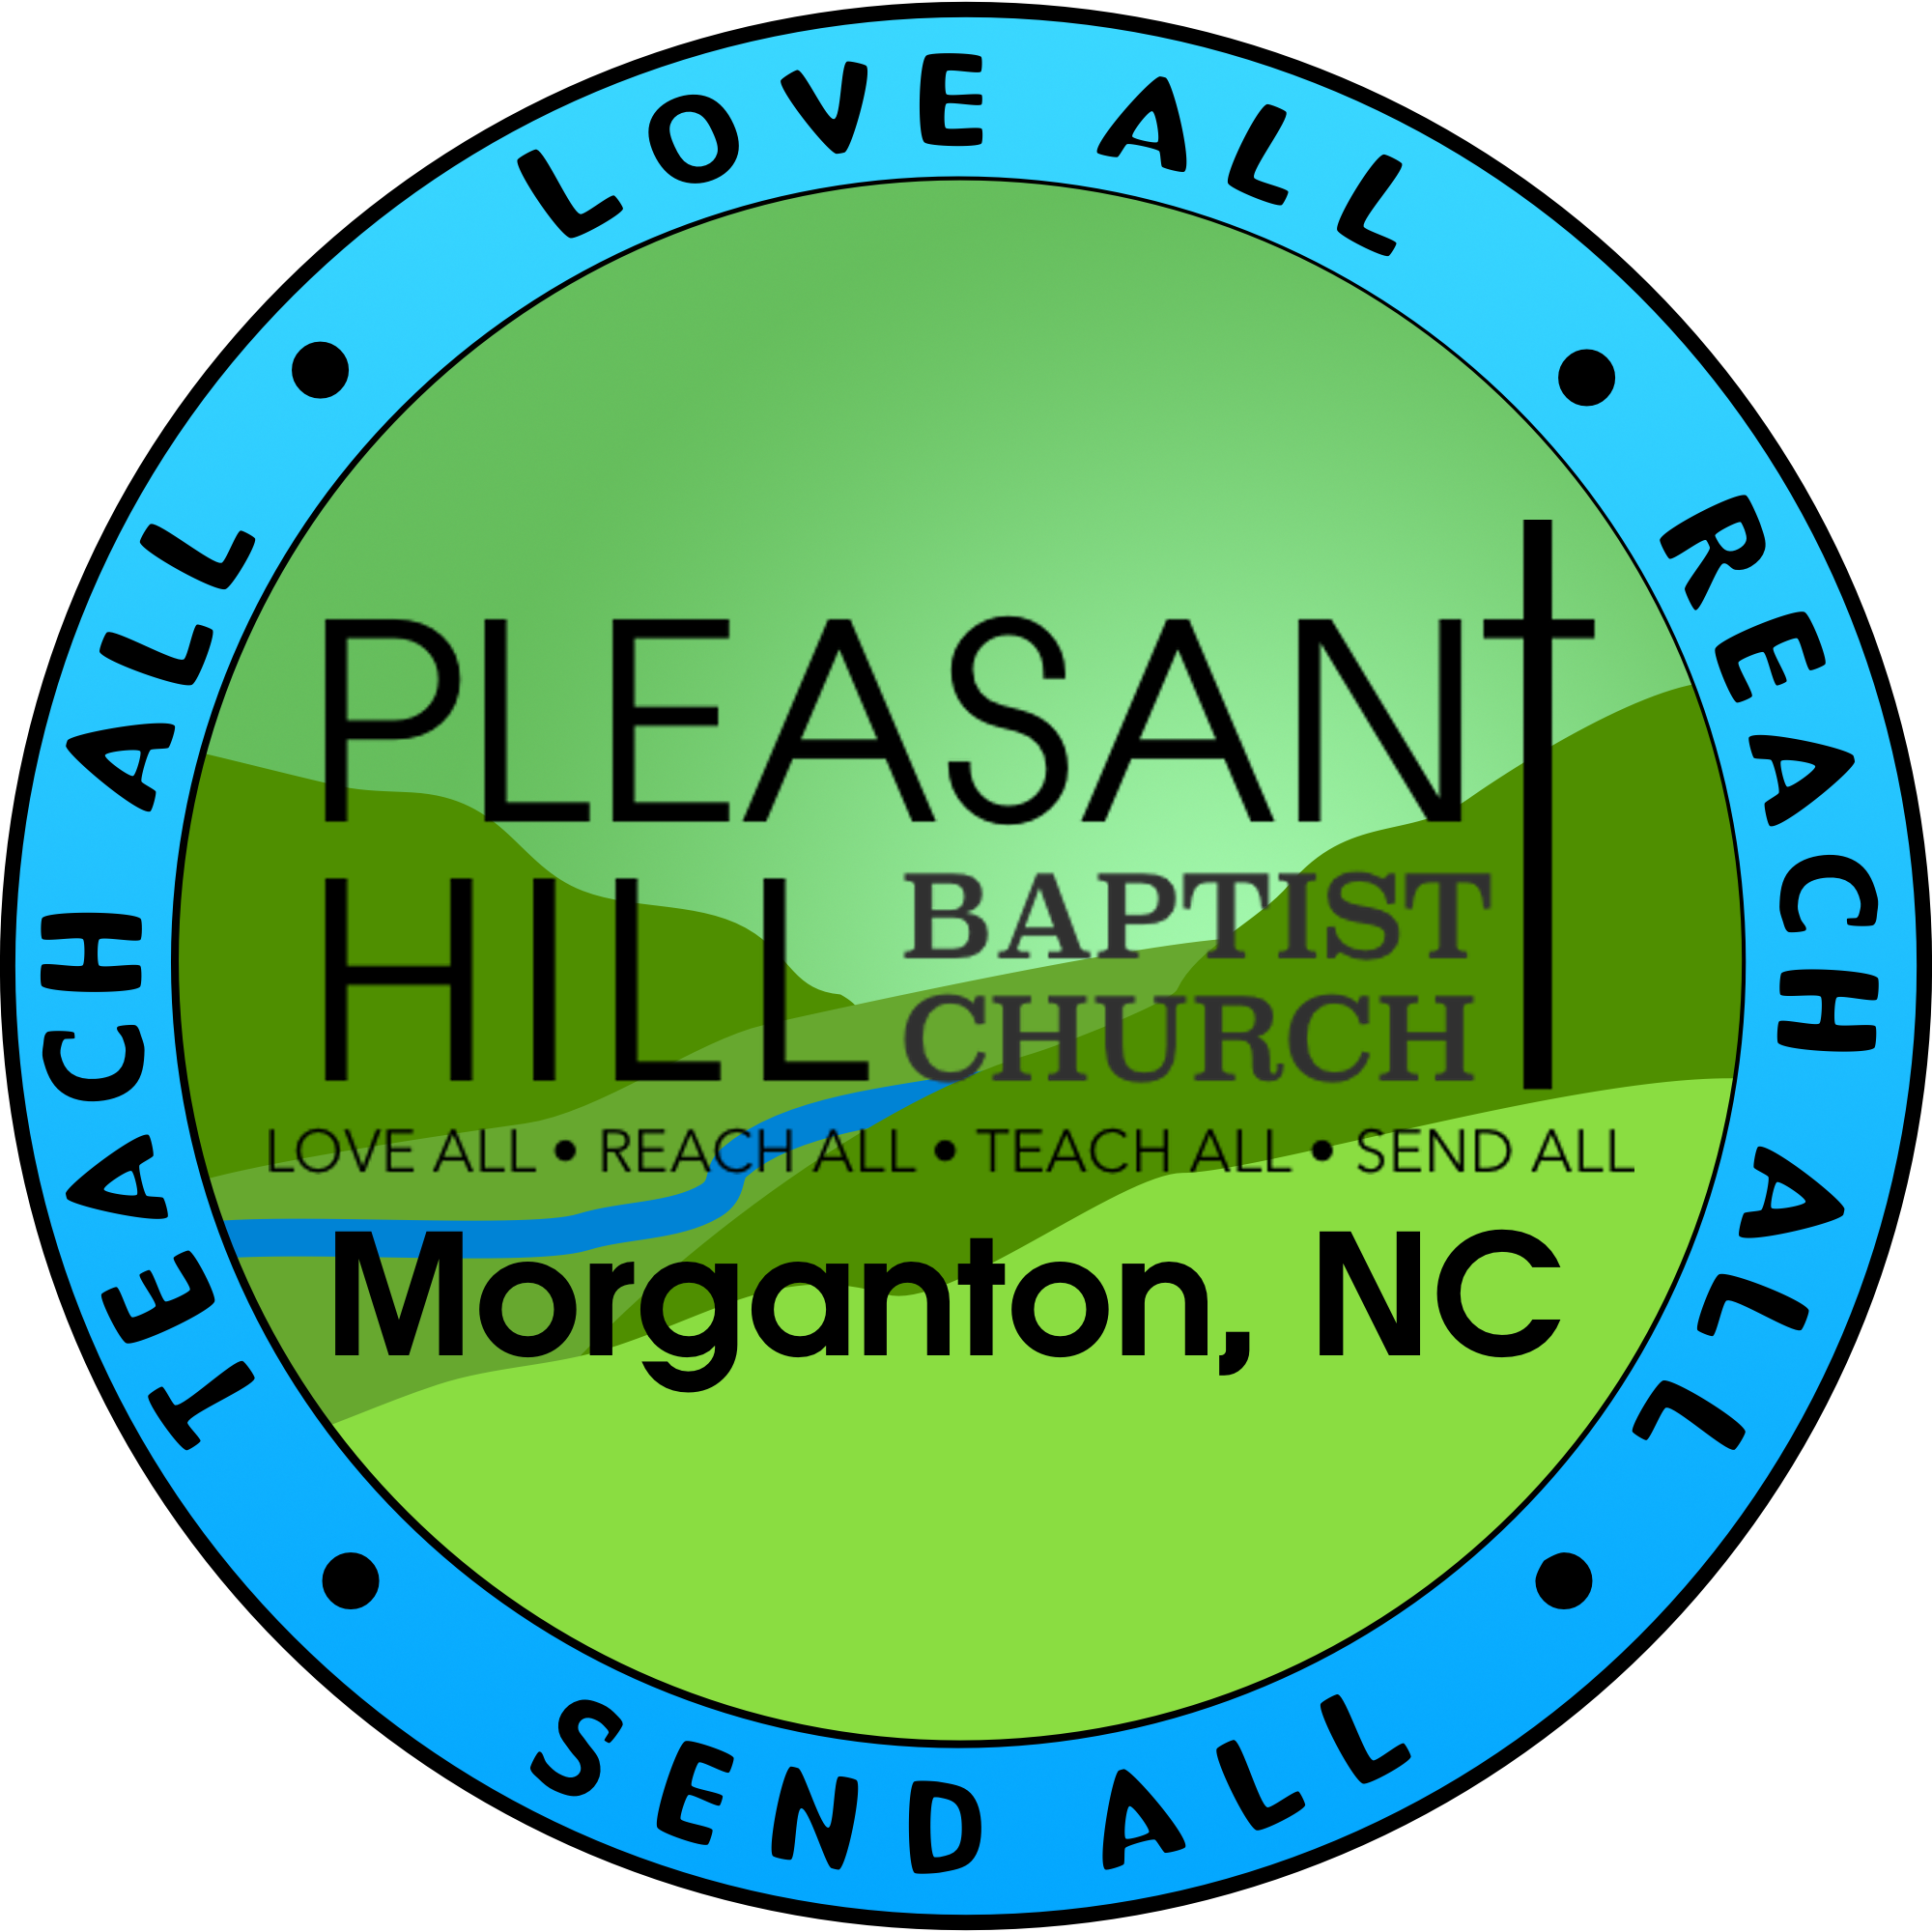 Pleasant Hill Baptist Church